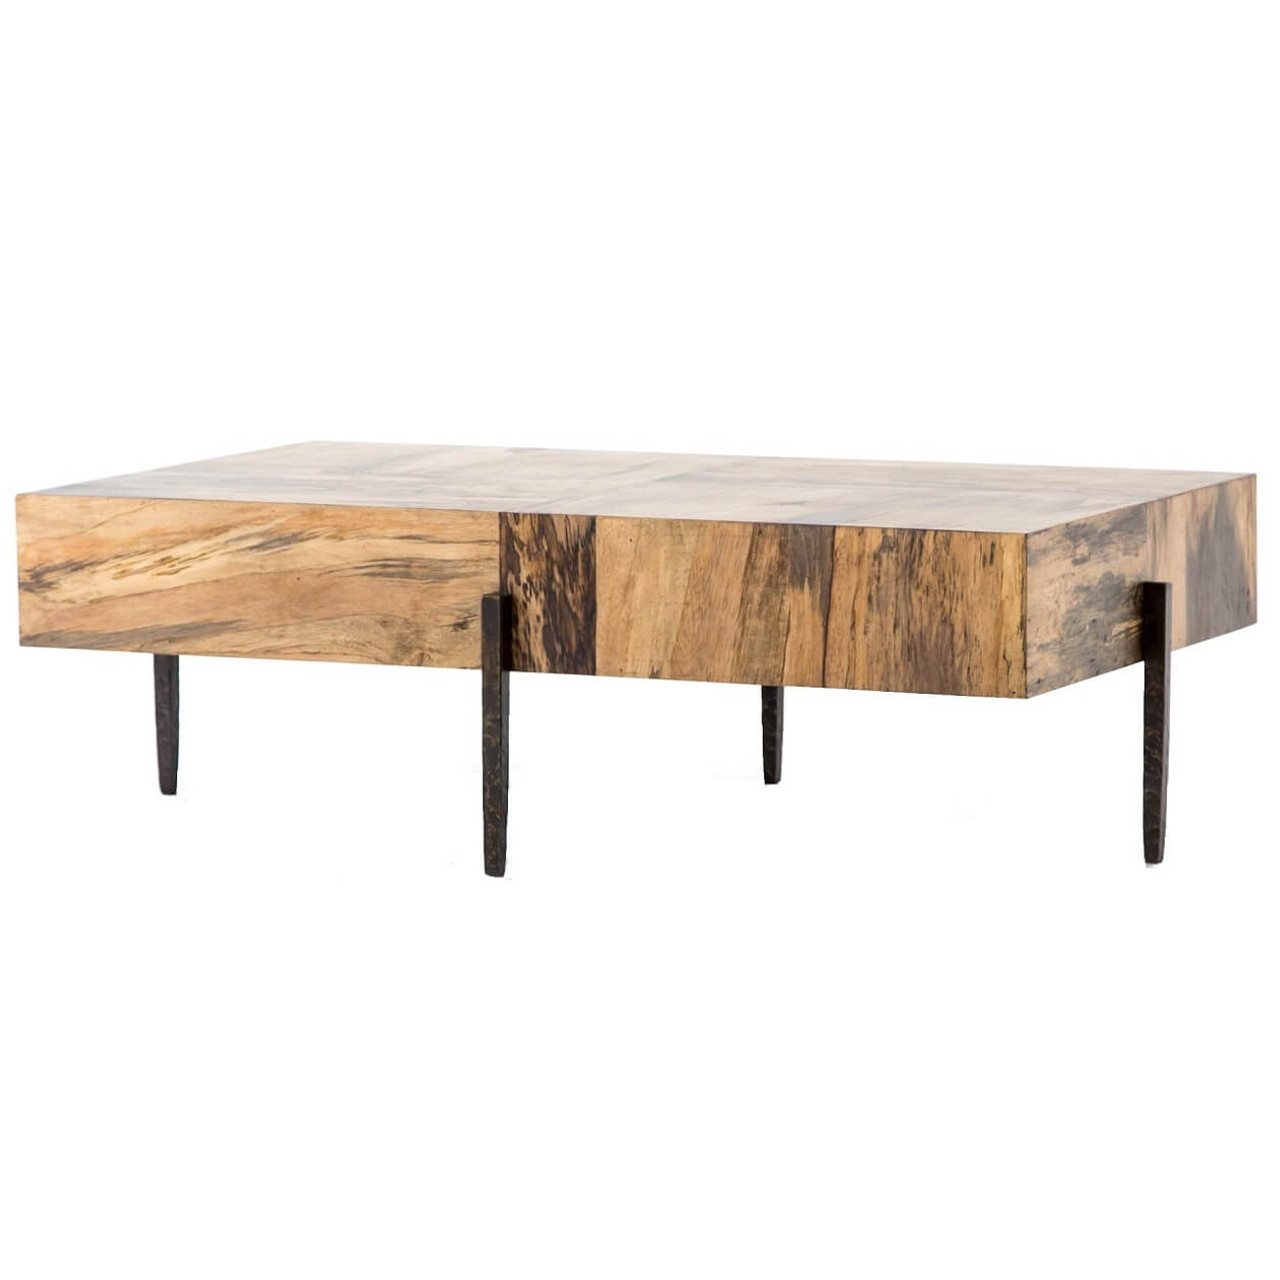 Inkas Organic Spalted Primavera Wood Block Coffee Table 52 Zin Home